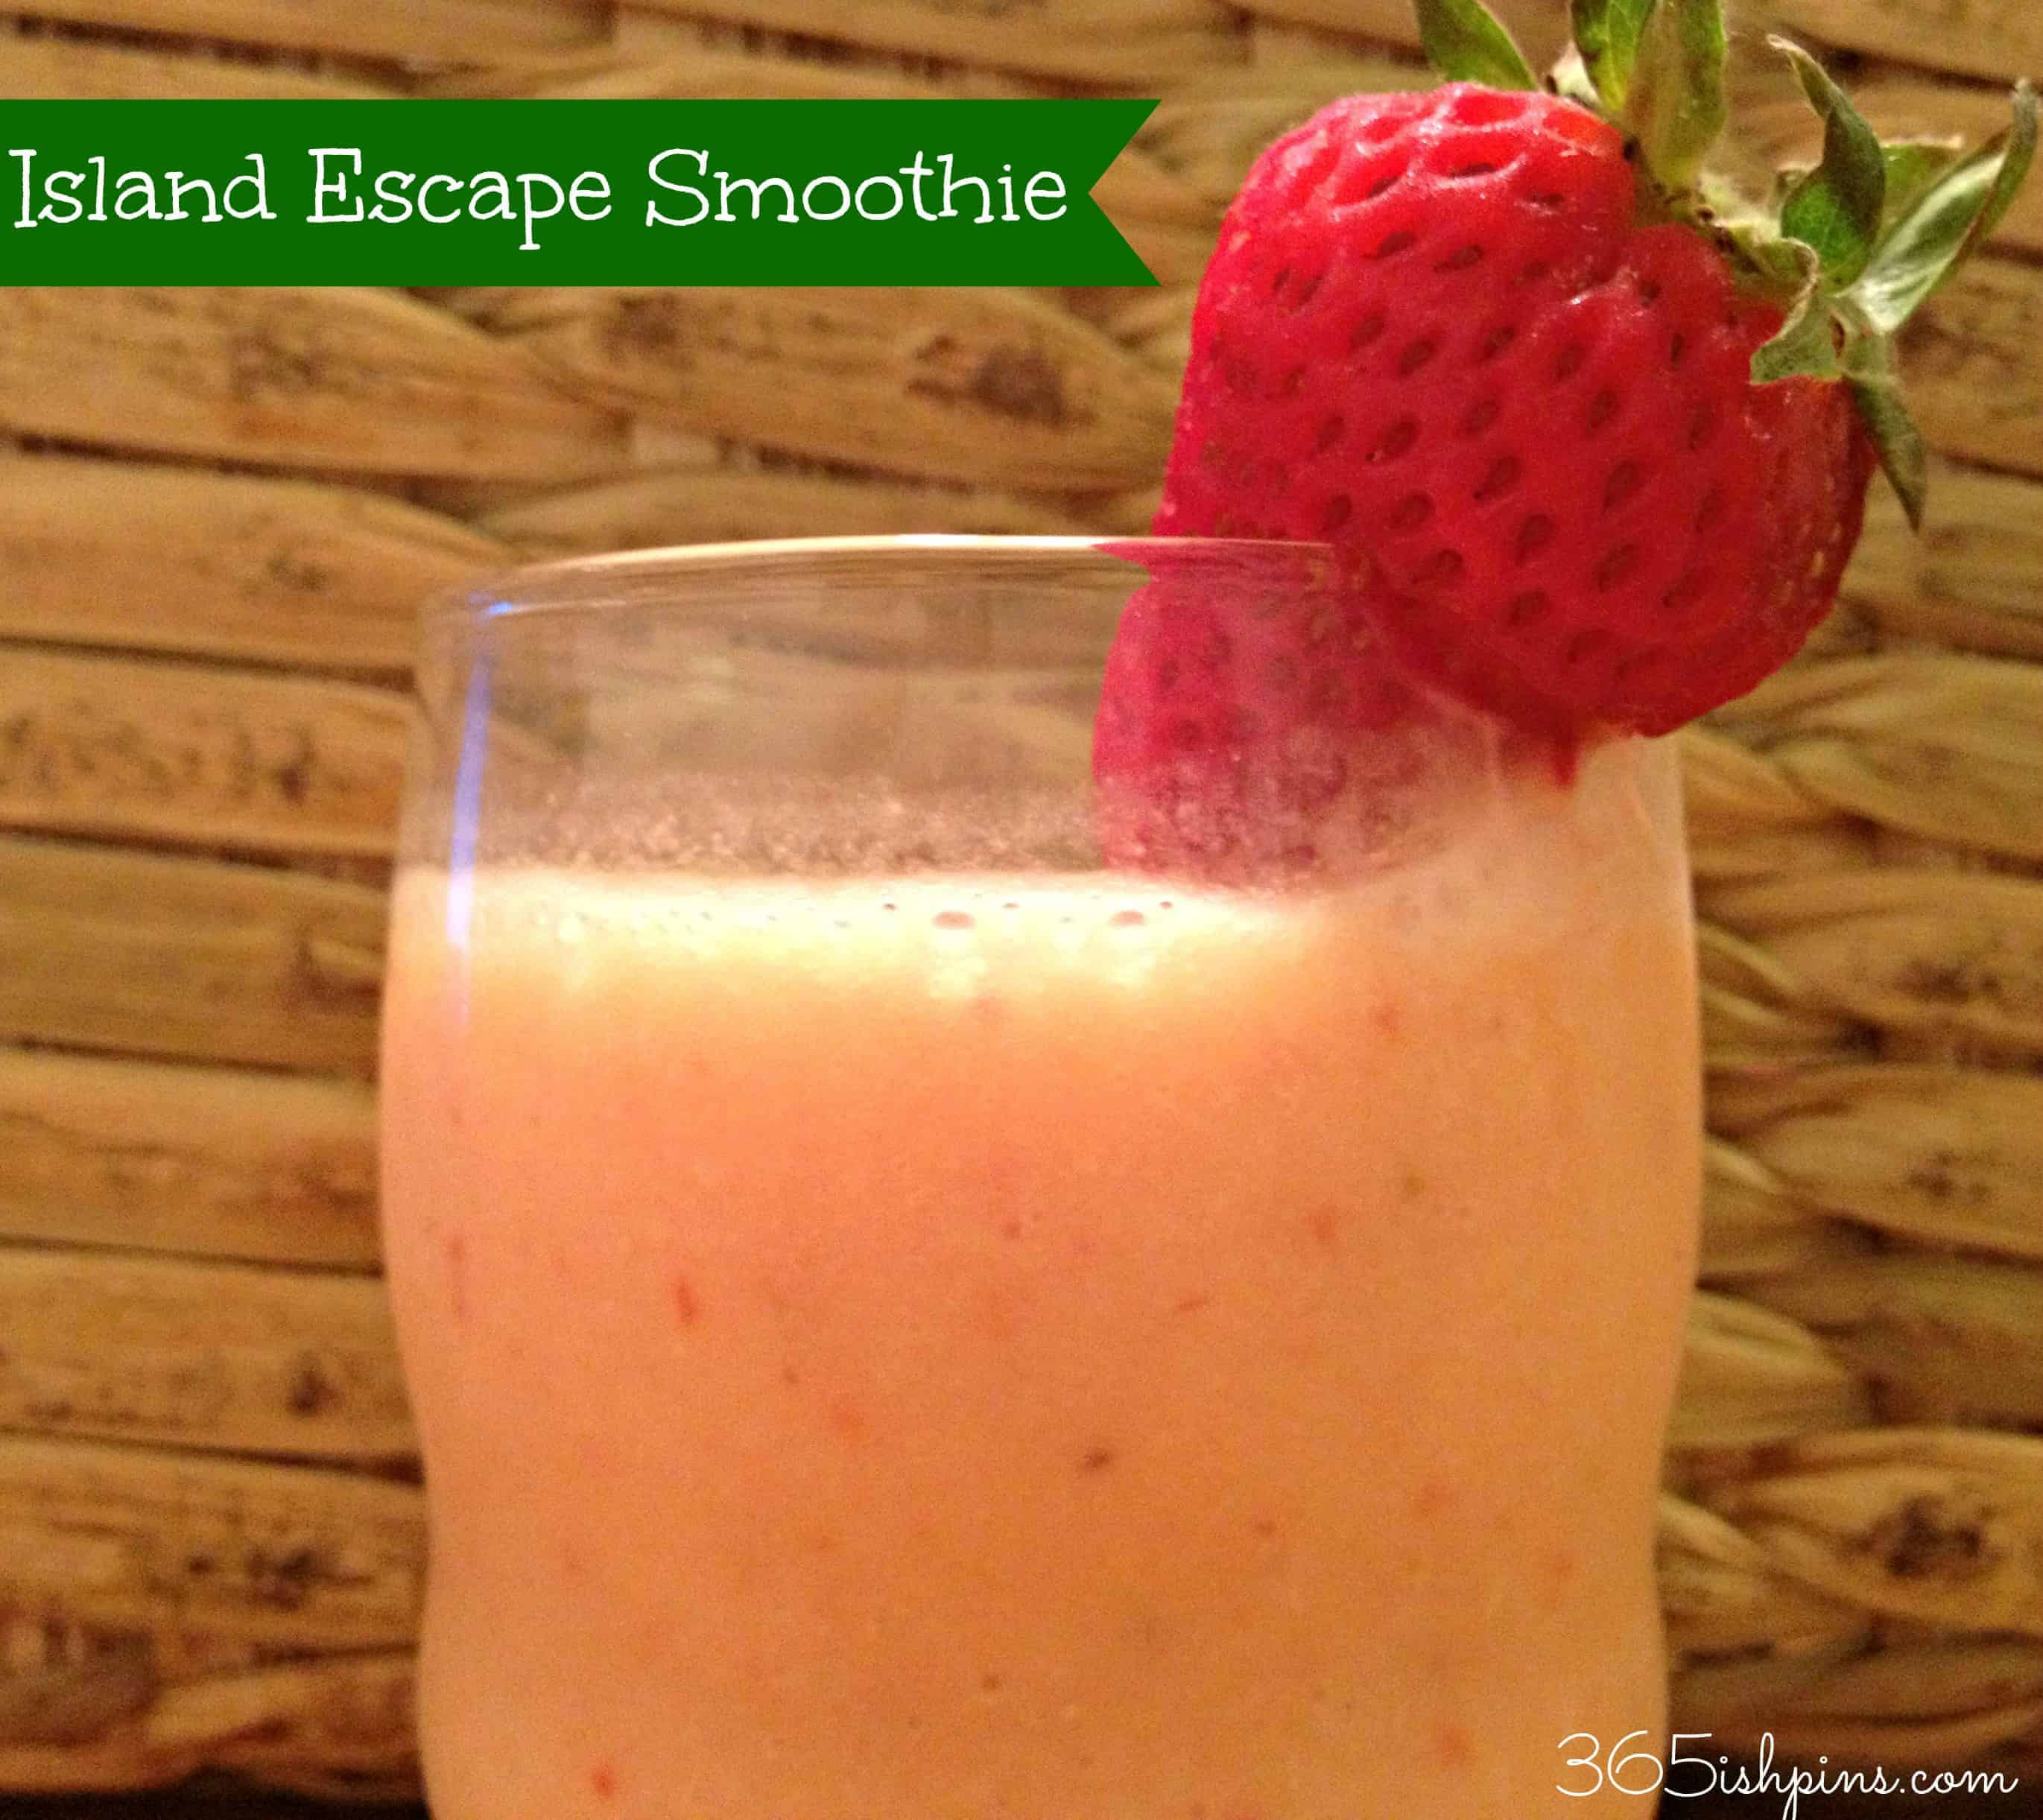 Day 342: Pineapple Strawberry Island Escape Smoothie